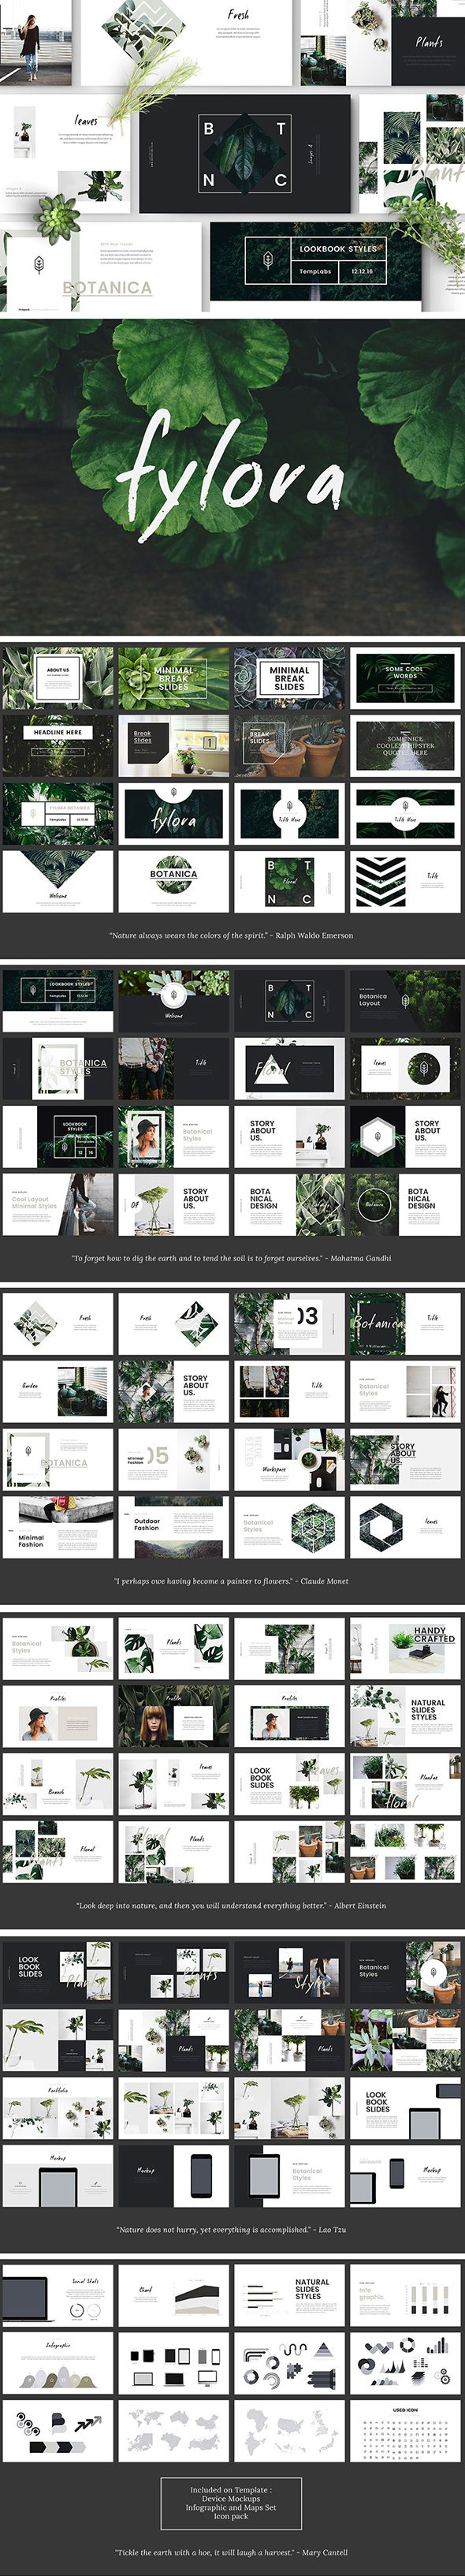 #Fylora Powerpoint Template - #PowerPoint Templates Presentation #Templates Download here: https://graphicriver.net/item/fylora-powerpoint-template/20421332?ref=alena994